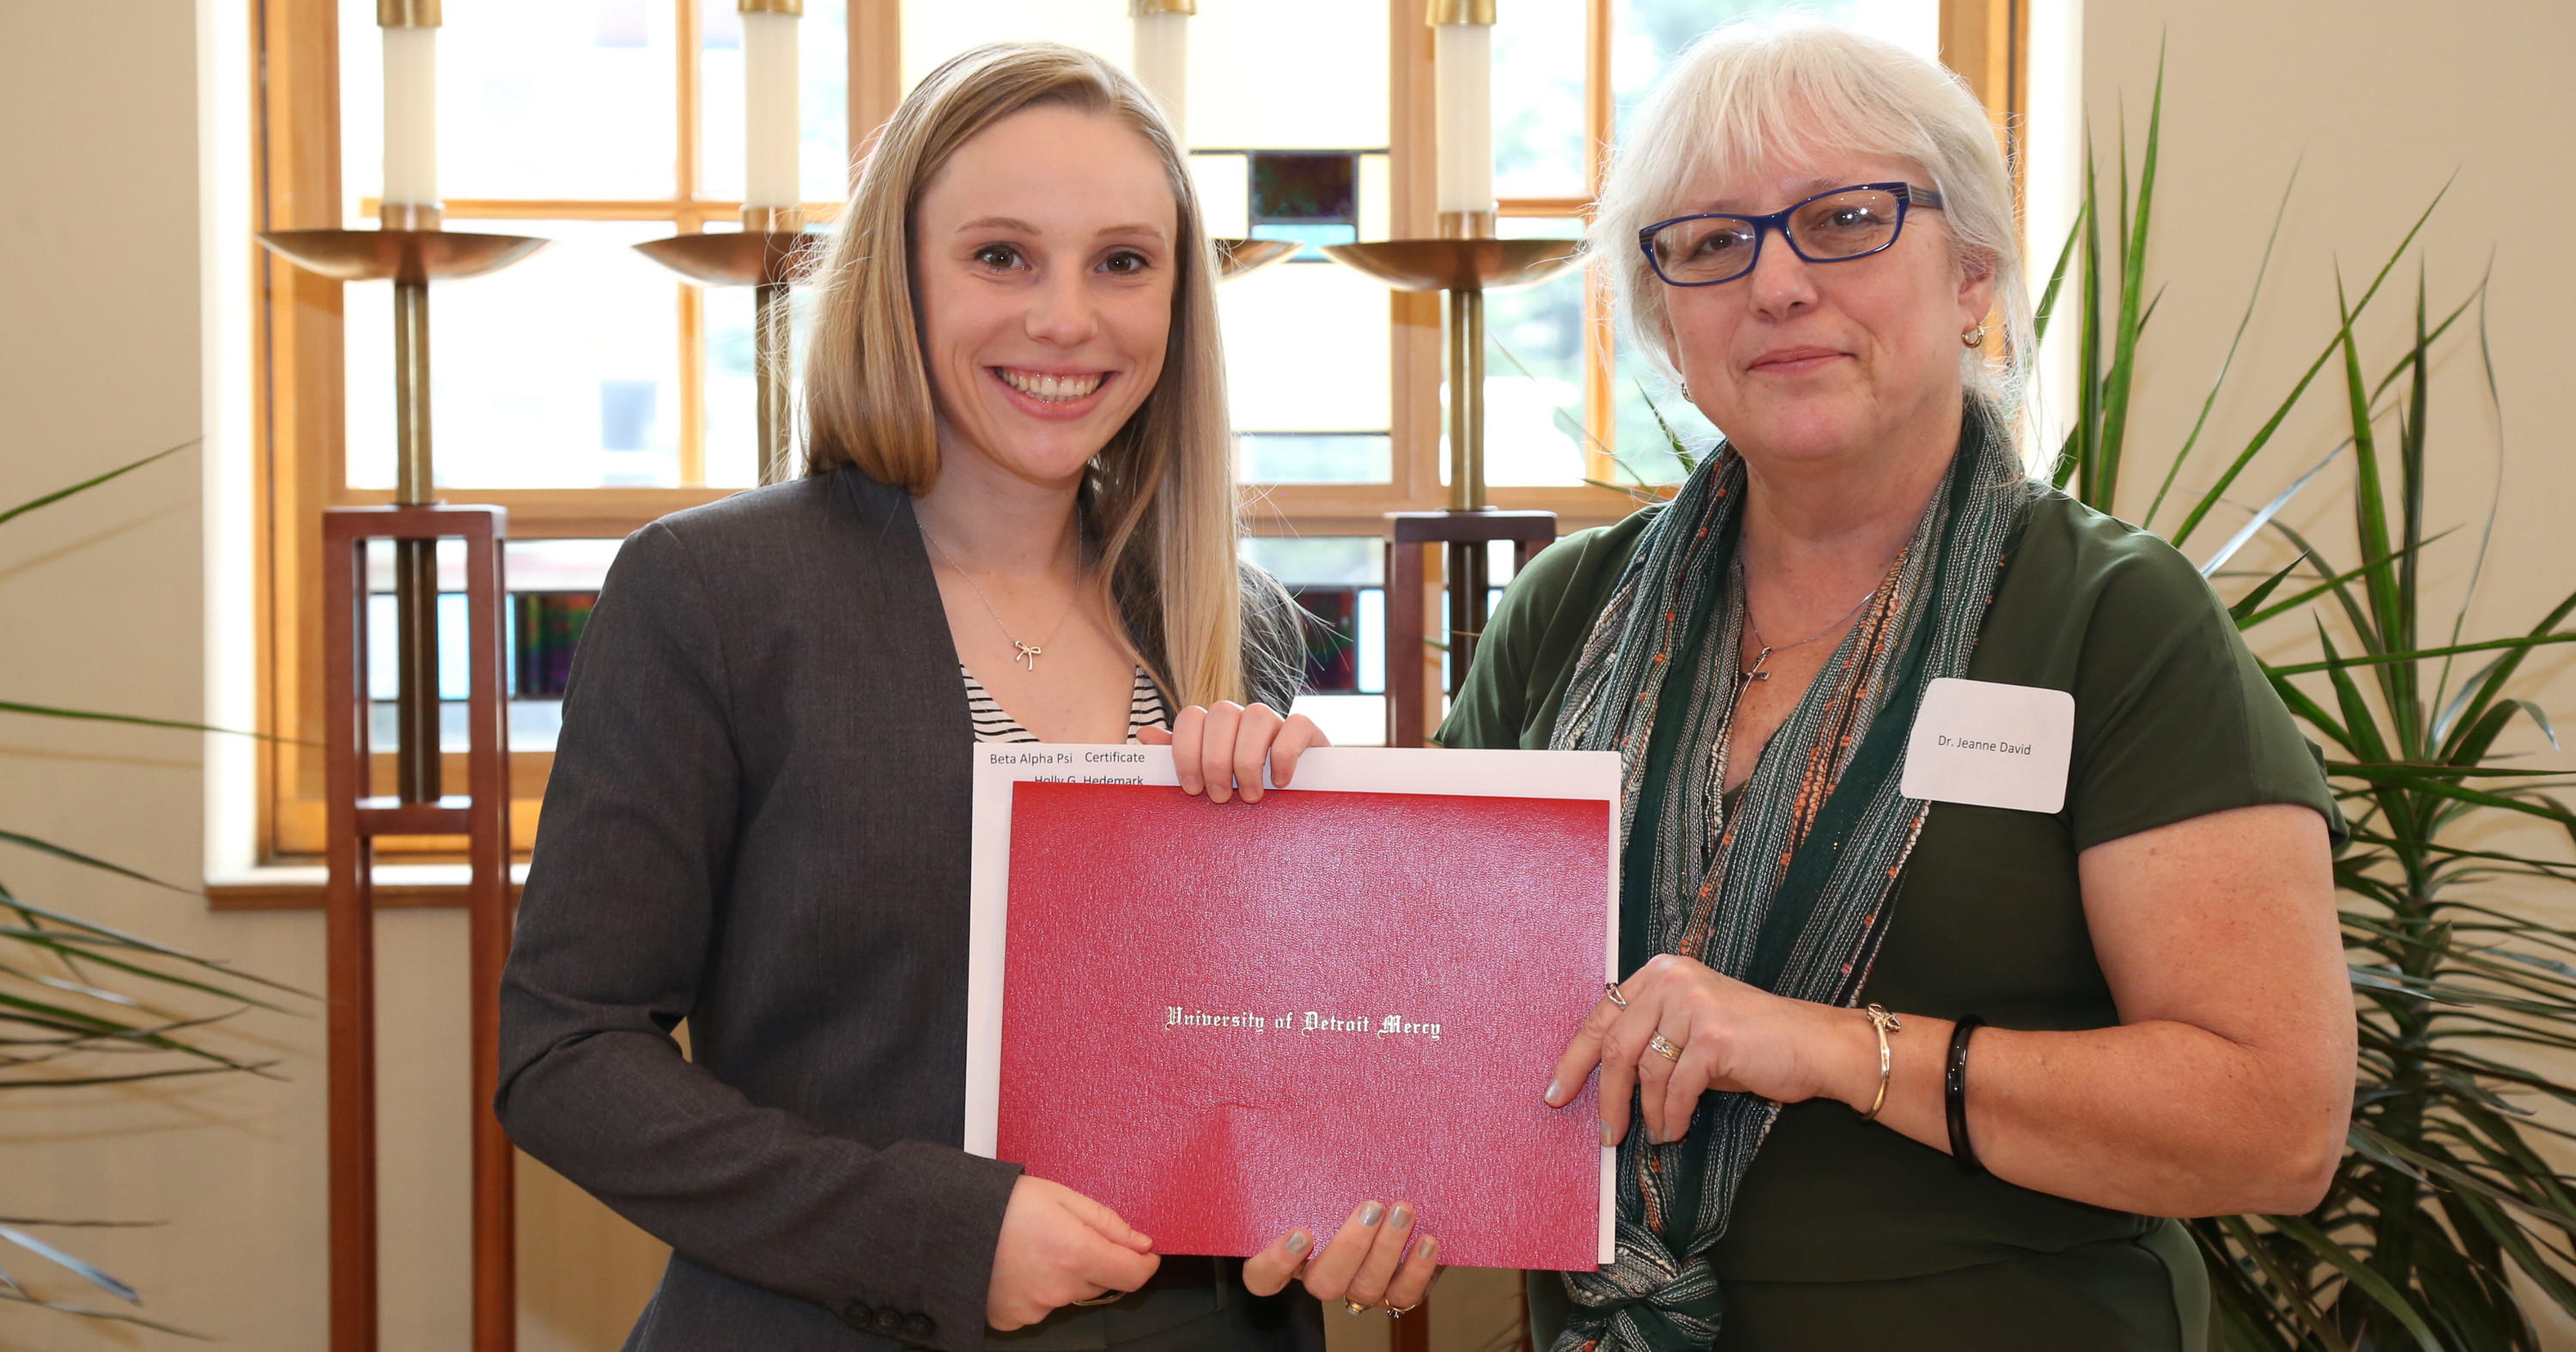 Holly McCartney, '17, '18, with Dr. Jeanne David, Associate Professor of Accounting